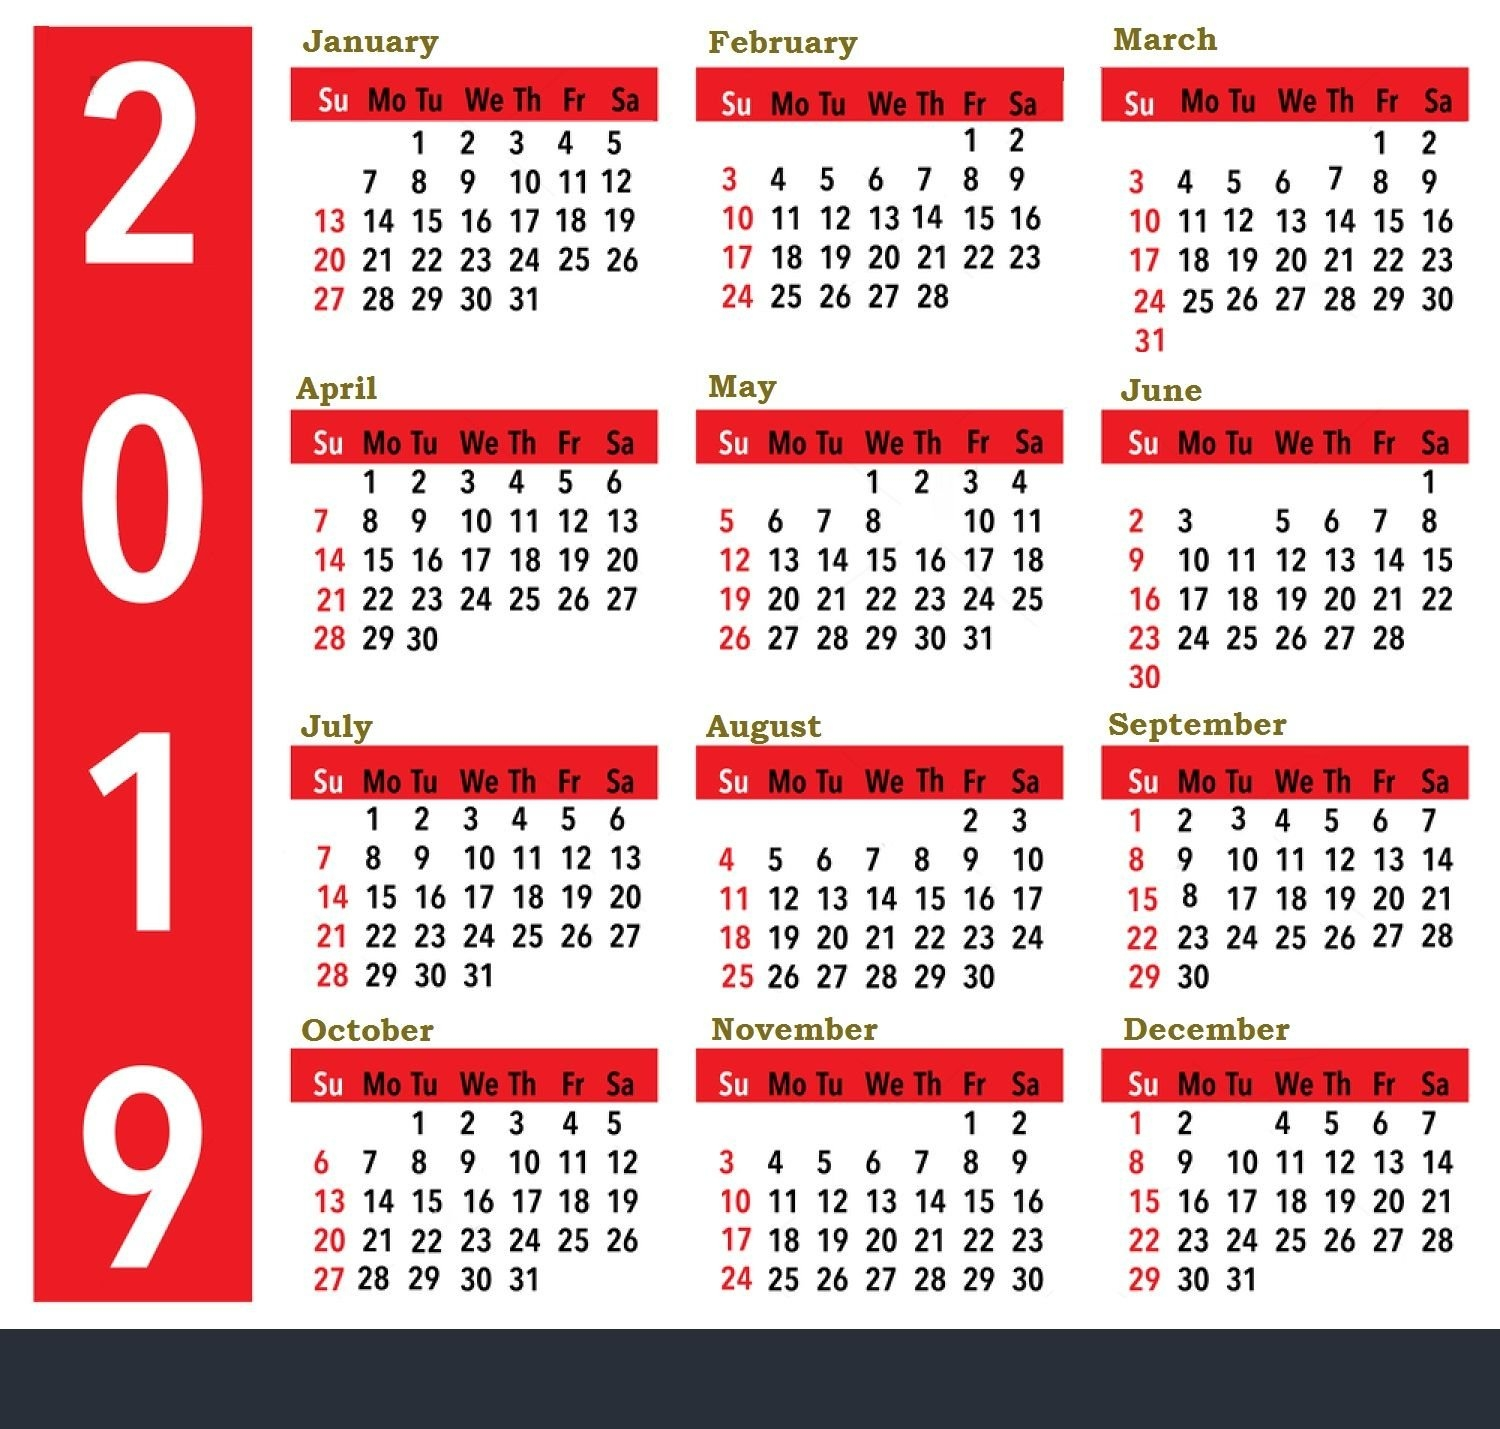 2019 Calendar For United States Holidays All Important Dates And Calendar 2019 Holiday Dates